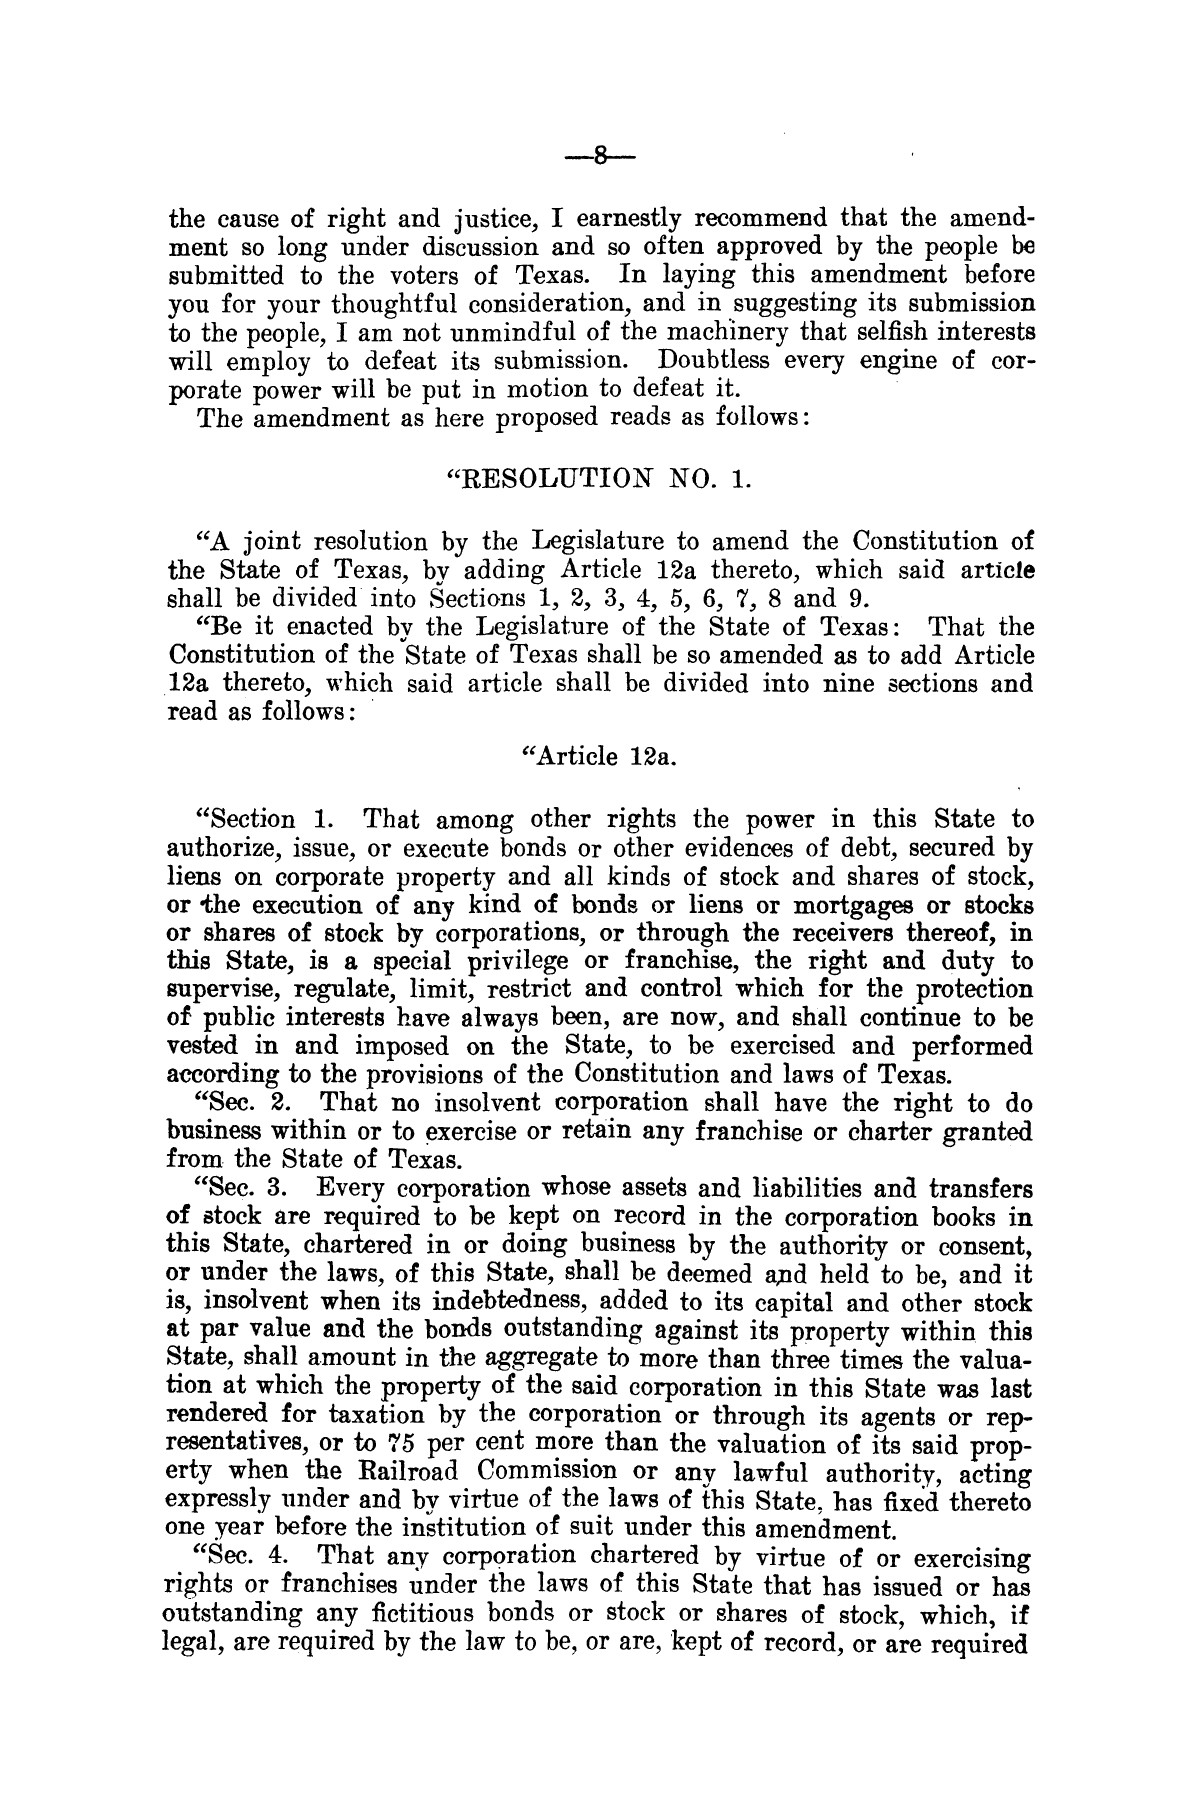 Message of Governor T.M. Campbell to the thirtieth legislature of Texas, to which is appended the State Democratic Platform adopted at Dallas, Texas, August 13, 1906.                                                                                                      [Sequence #]: 8 of 27